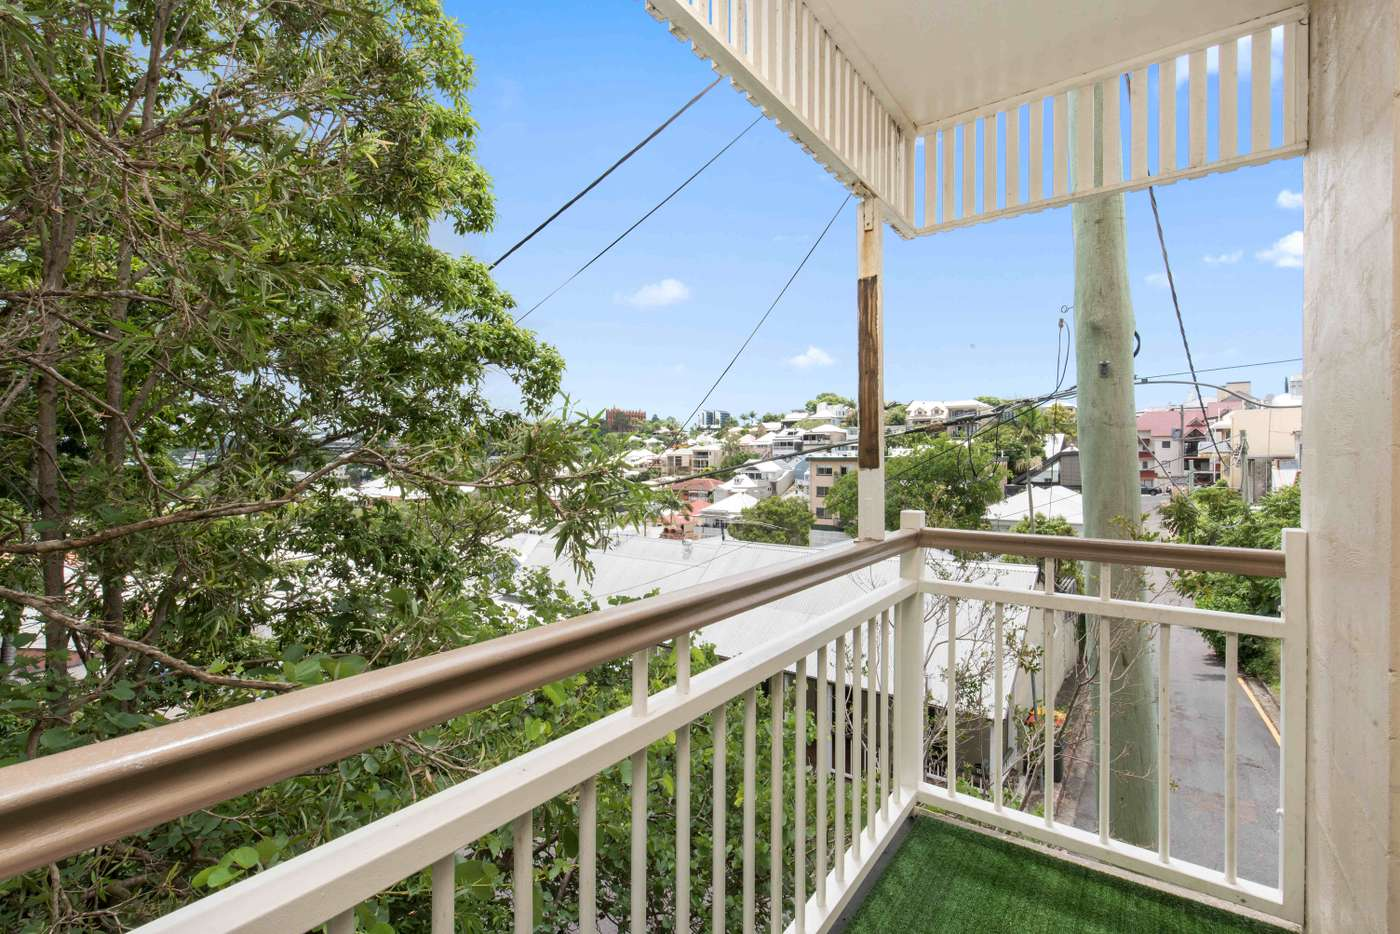 Main view of Homely apartment listing, 6/186 Petrie Terrace, Petrie Terrace QLD 4000